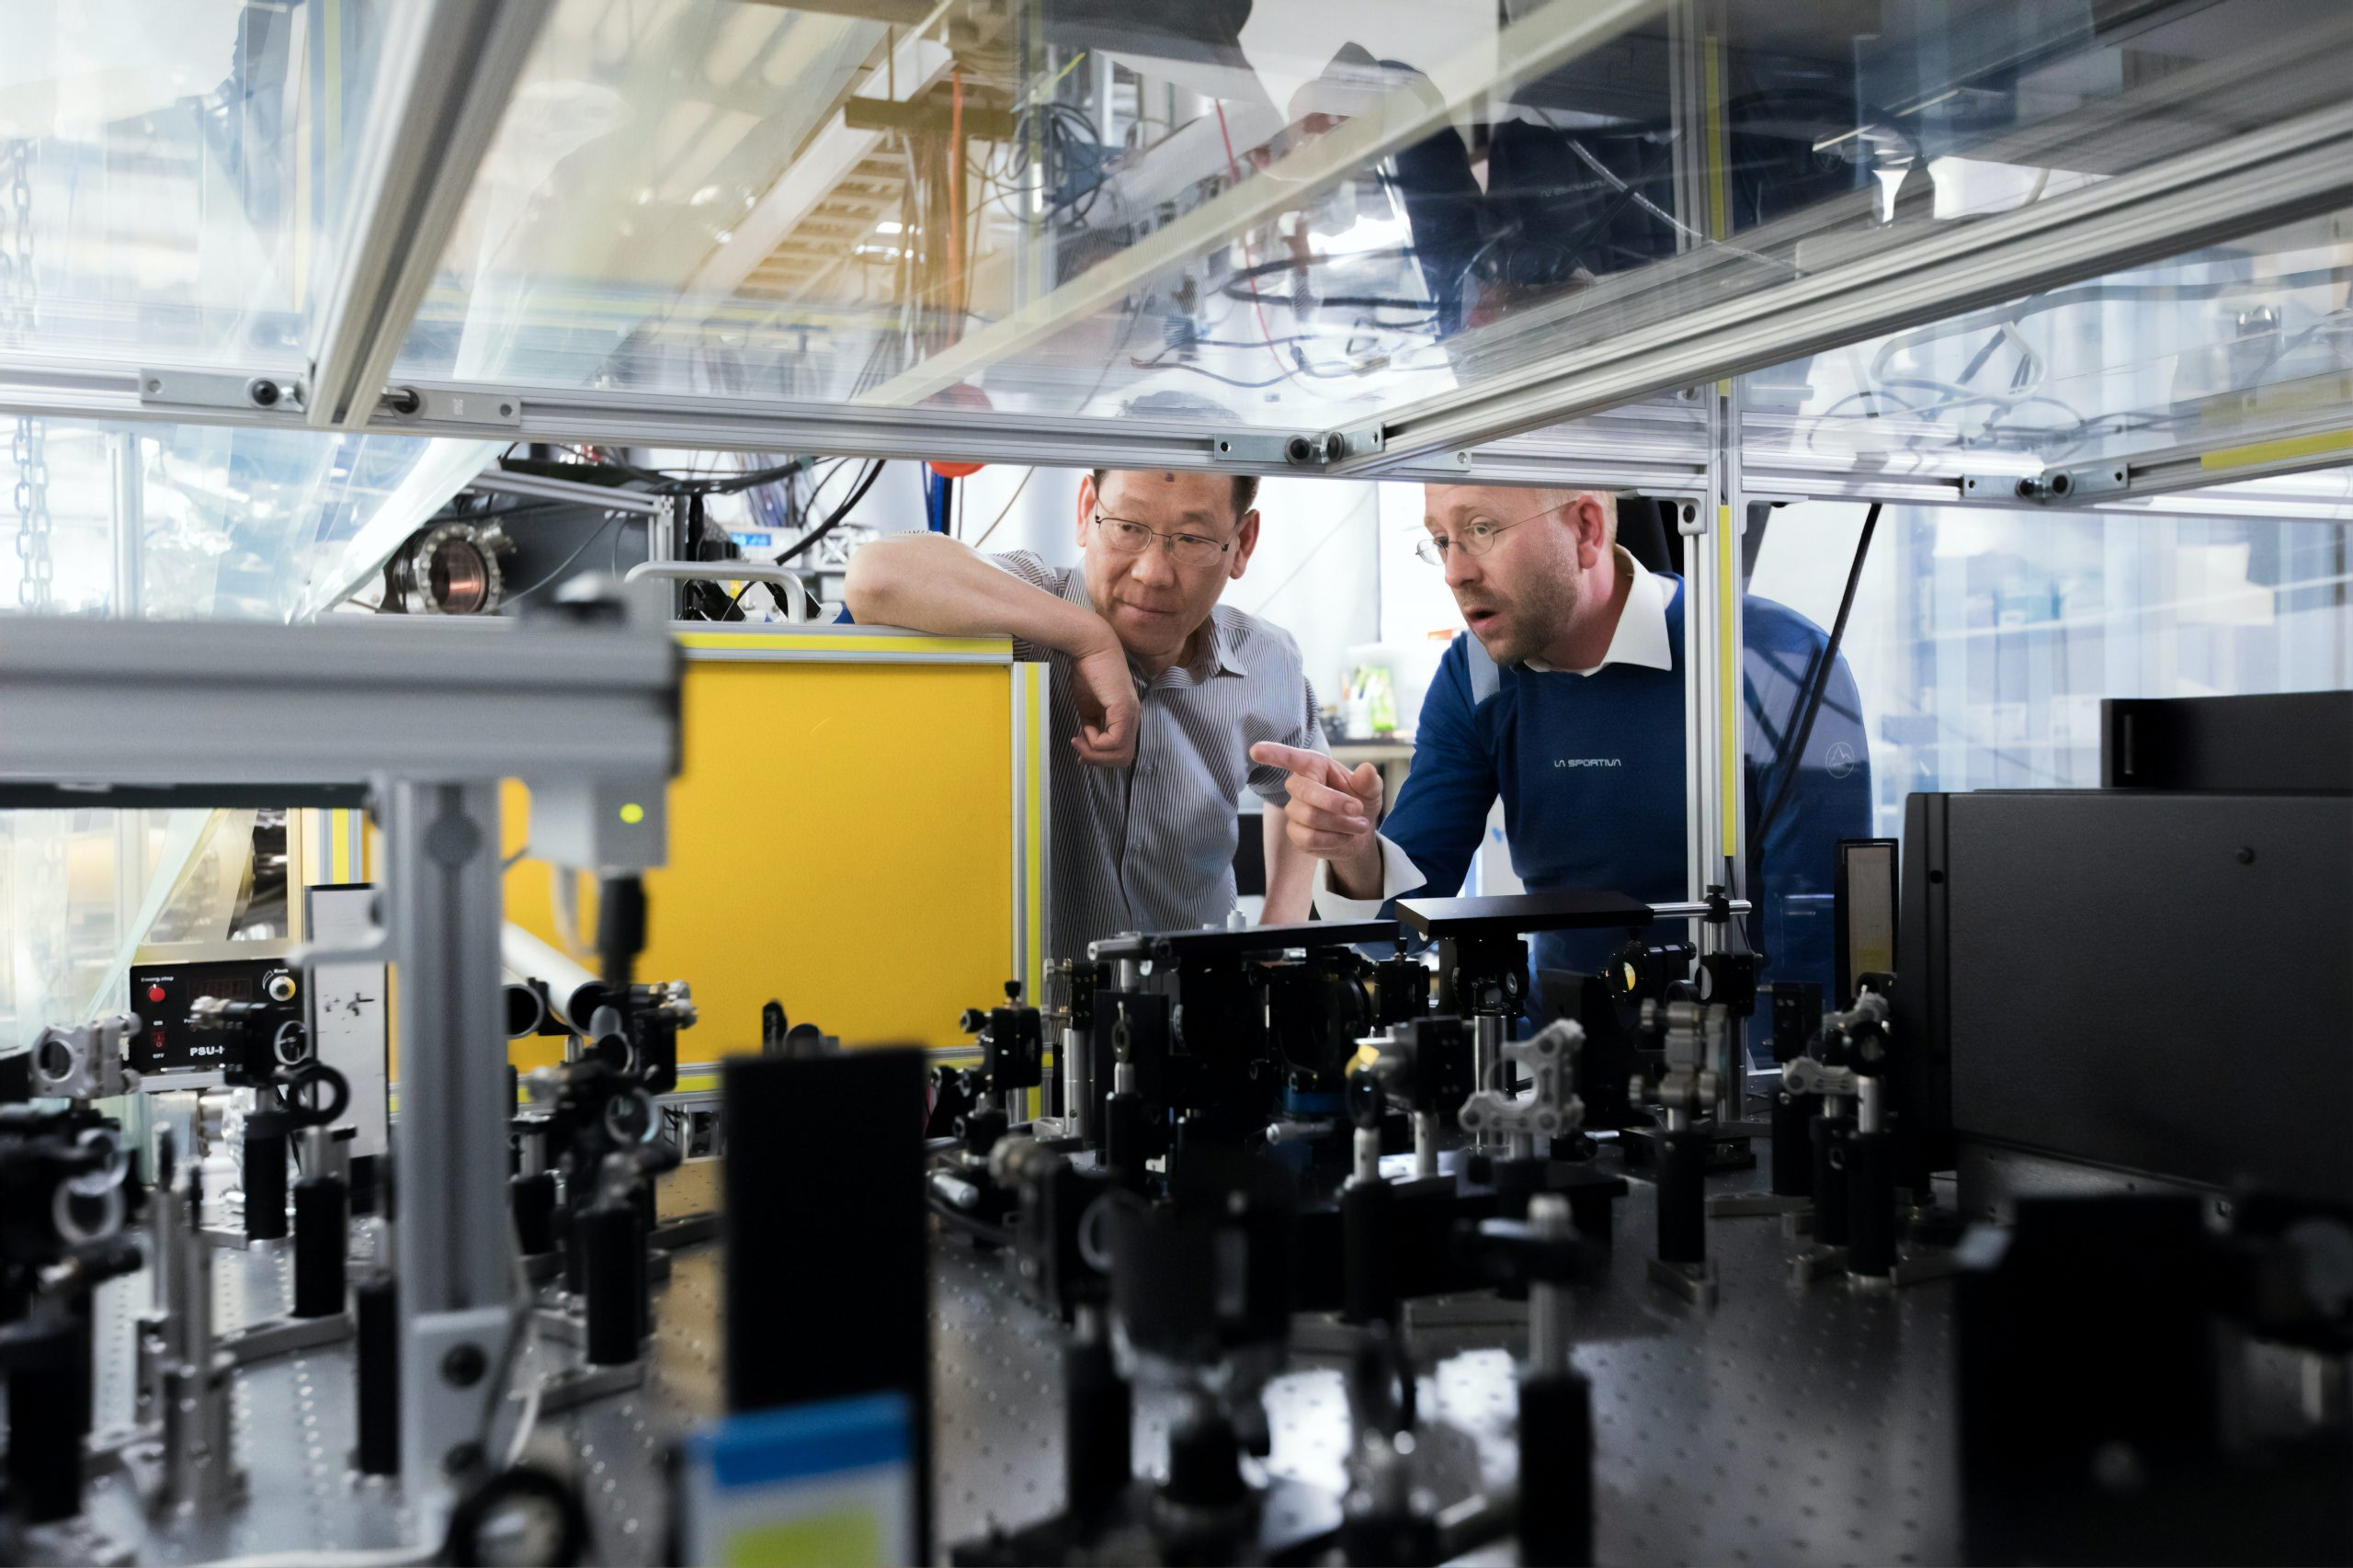 Chinese manufacturing companies